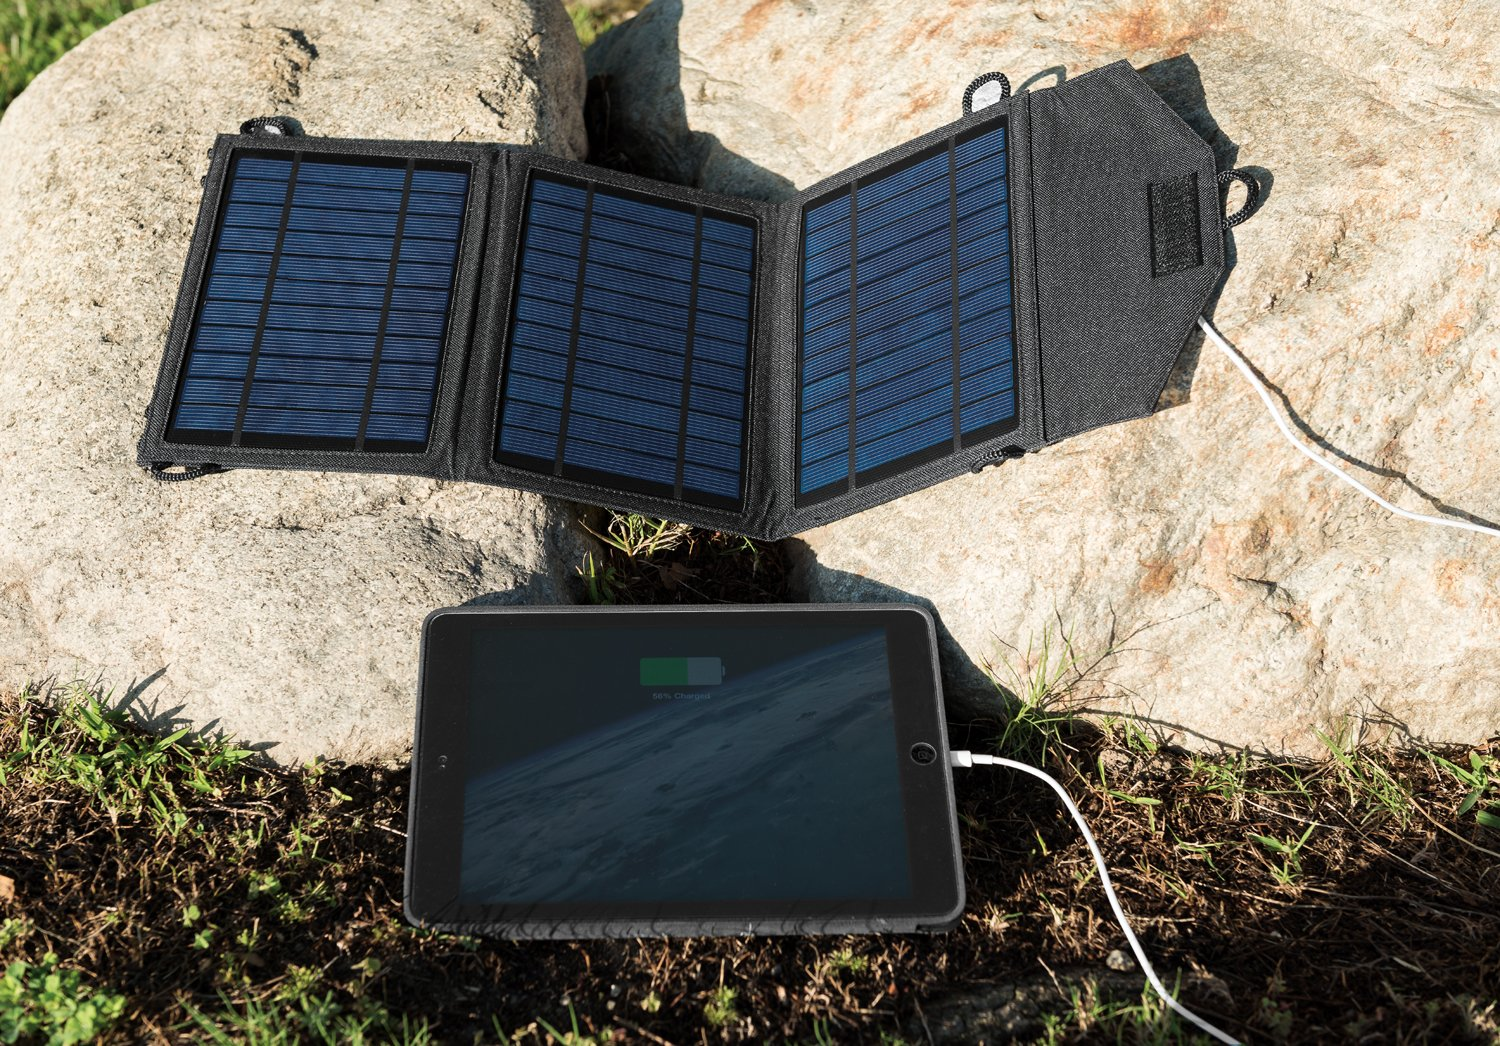 The Best Portable Solar Panels For Preppers Preps Life